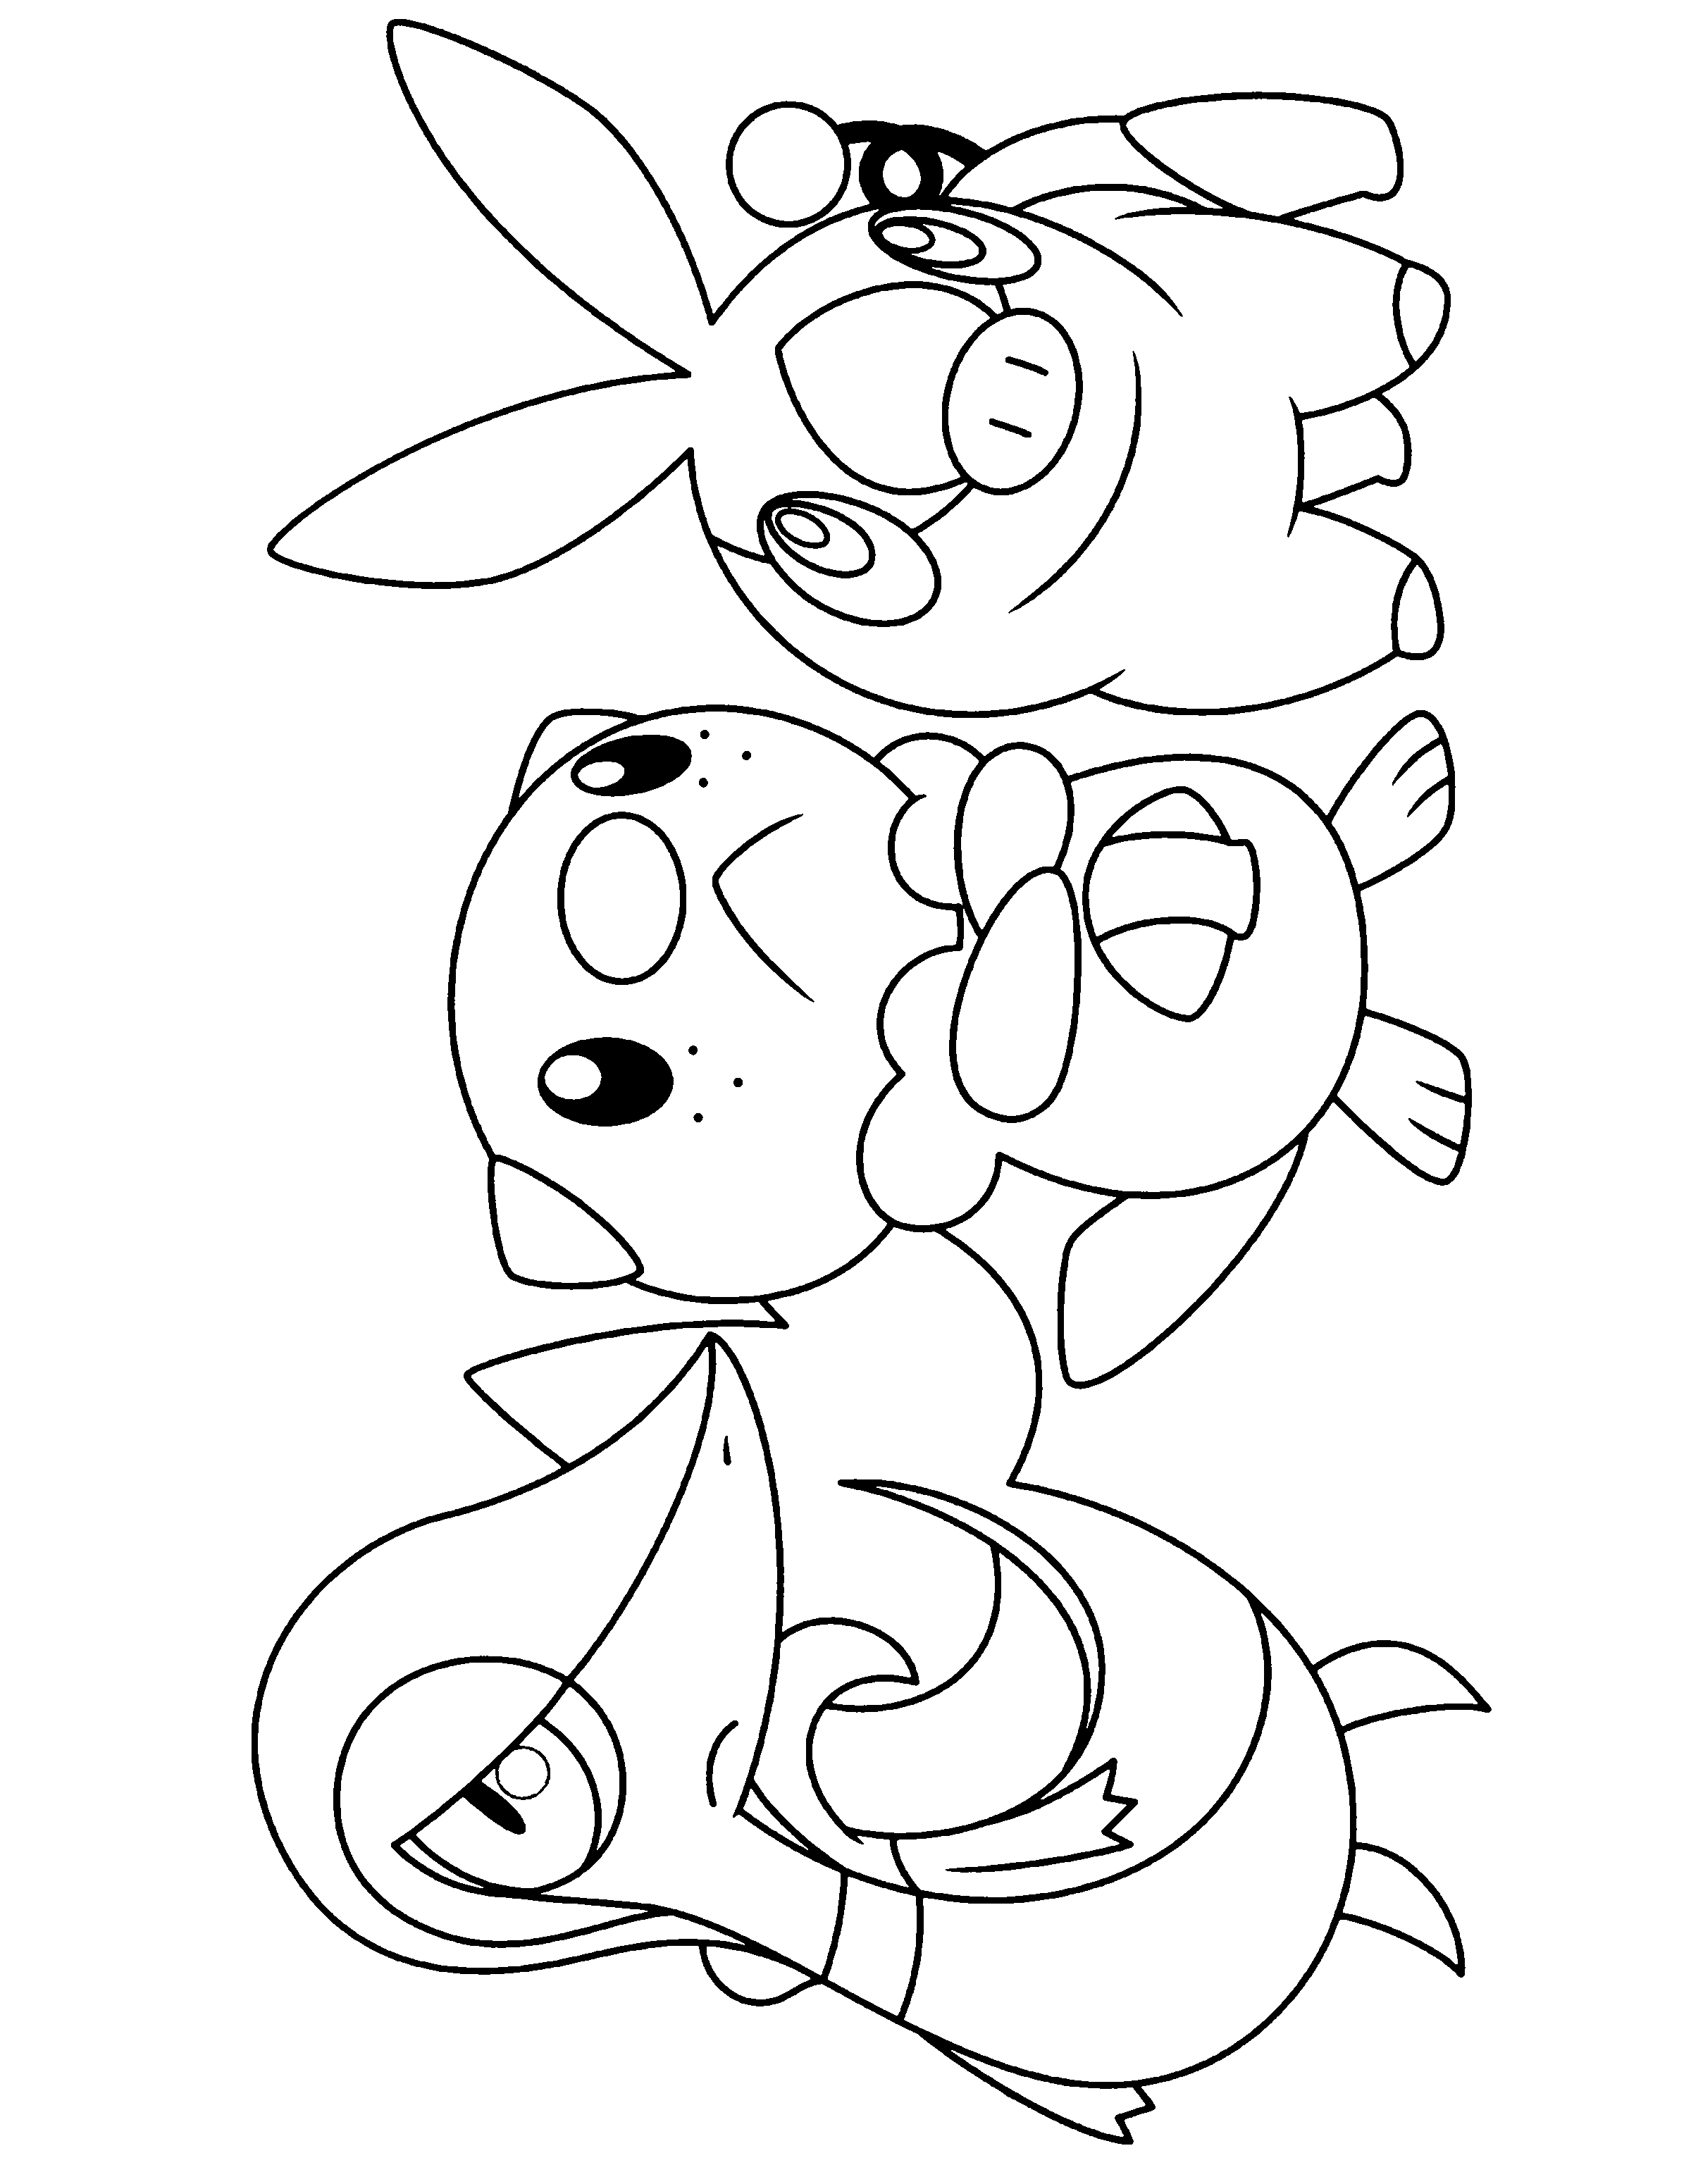 pokemon quest coloring pages 17 best images about pokemon coloring pages on pinterest quest coloring pages pokemon